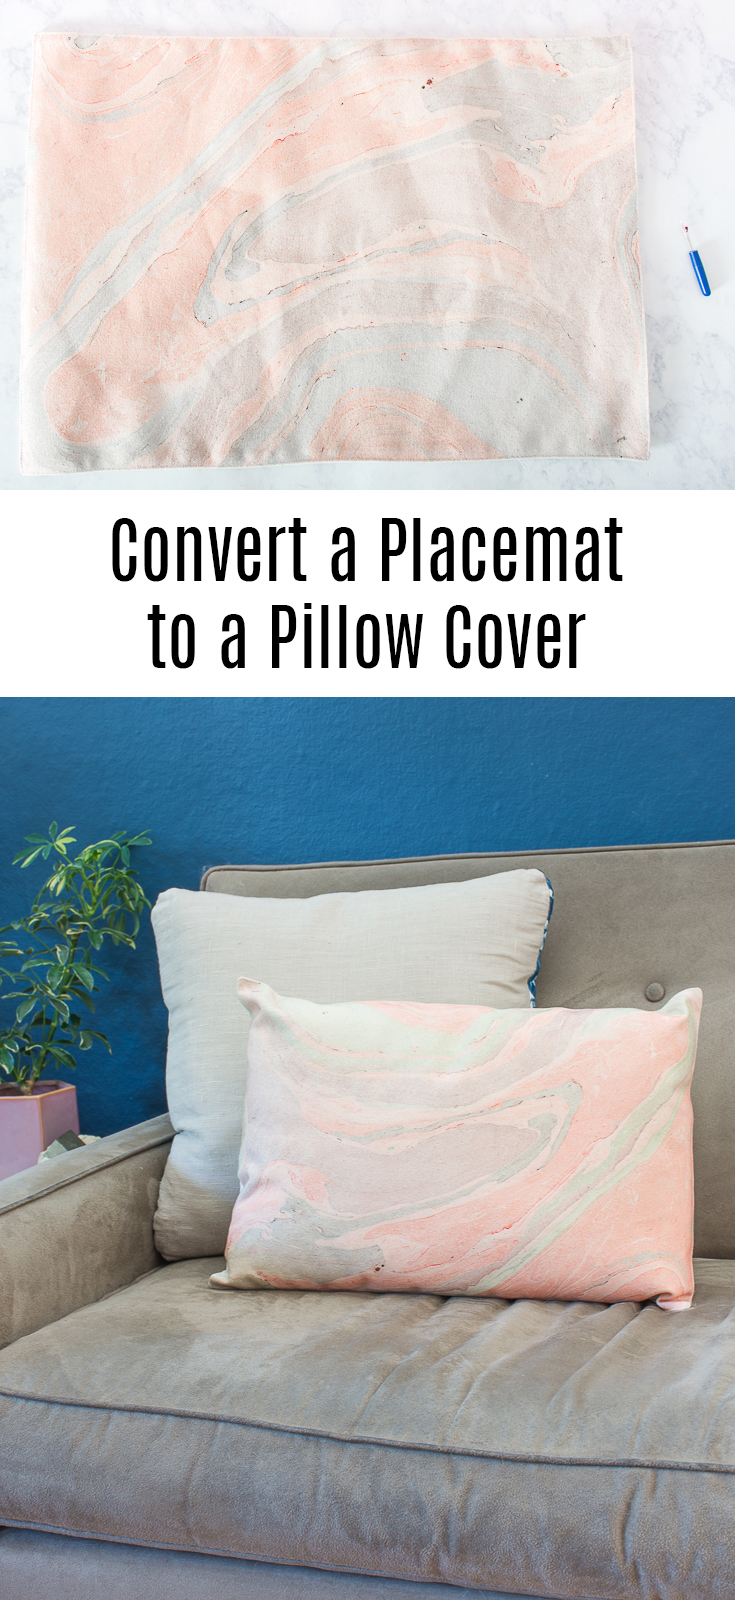 Turn a cute placemat into a cushion cover with this tutorial for placemat pillow cover conversion. #DIY #sewing